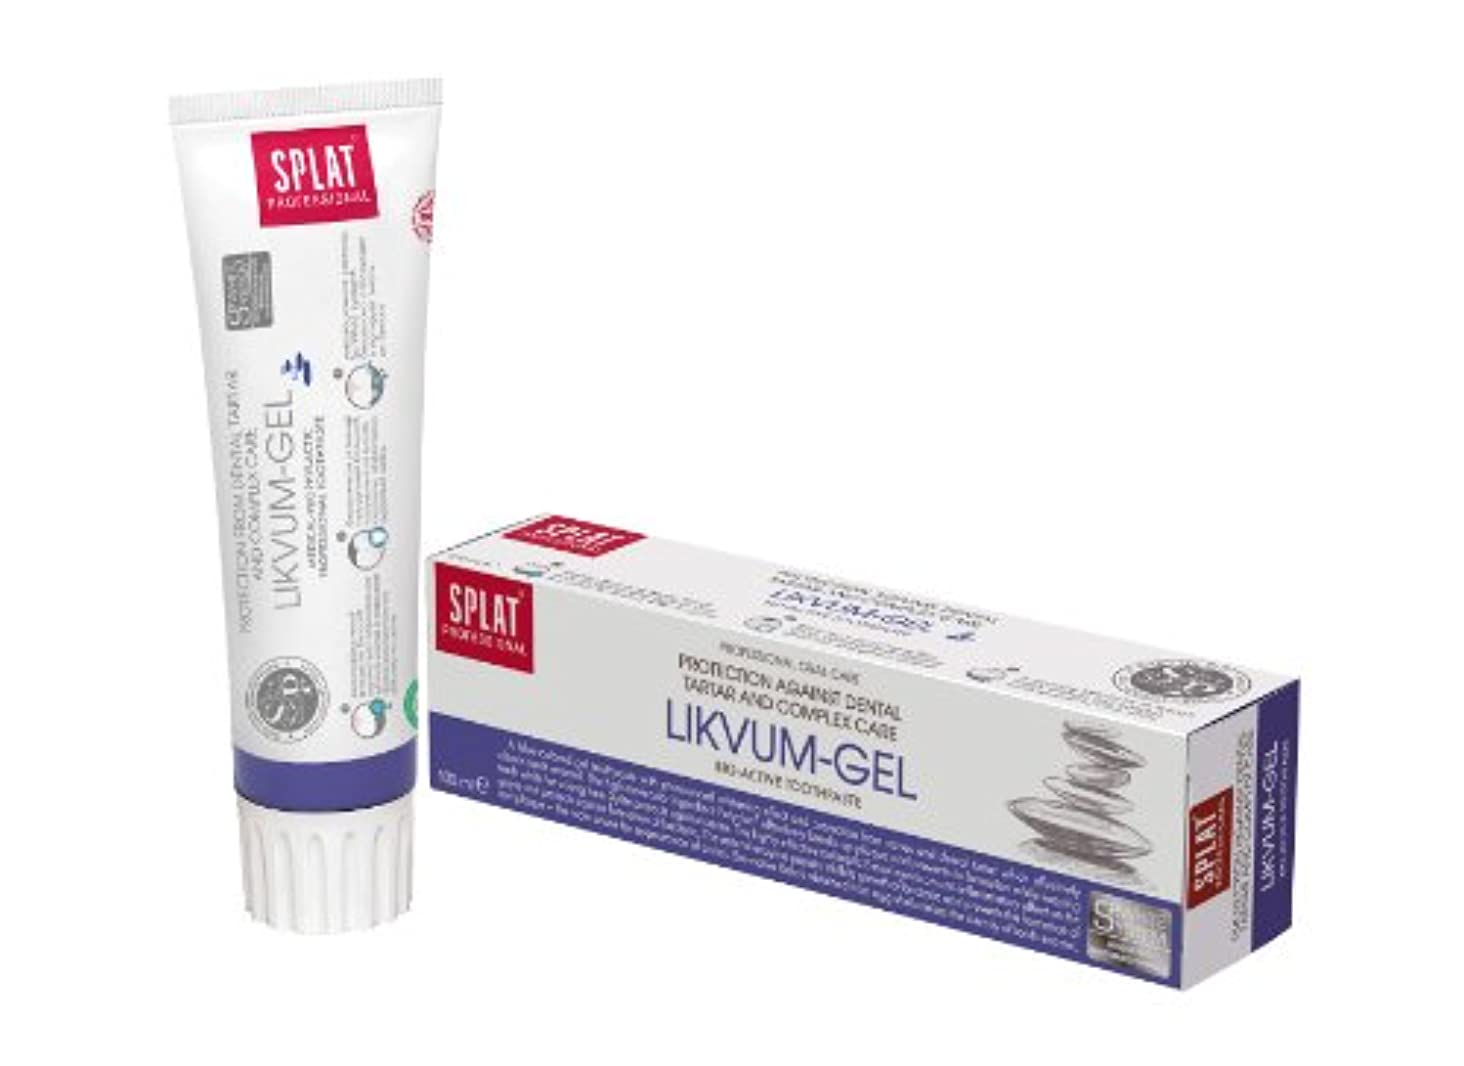 Toothpaste Splat Professional 100ml (Likvum-gel)